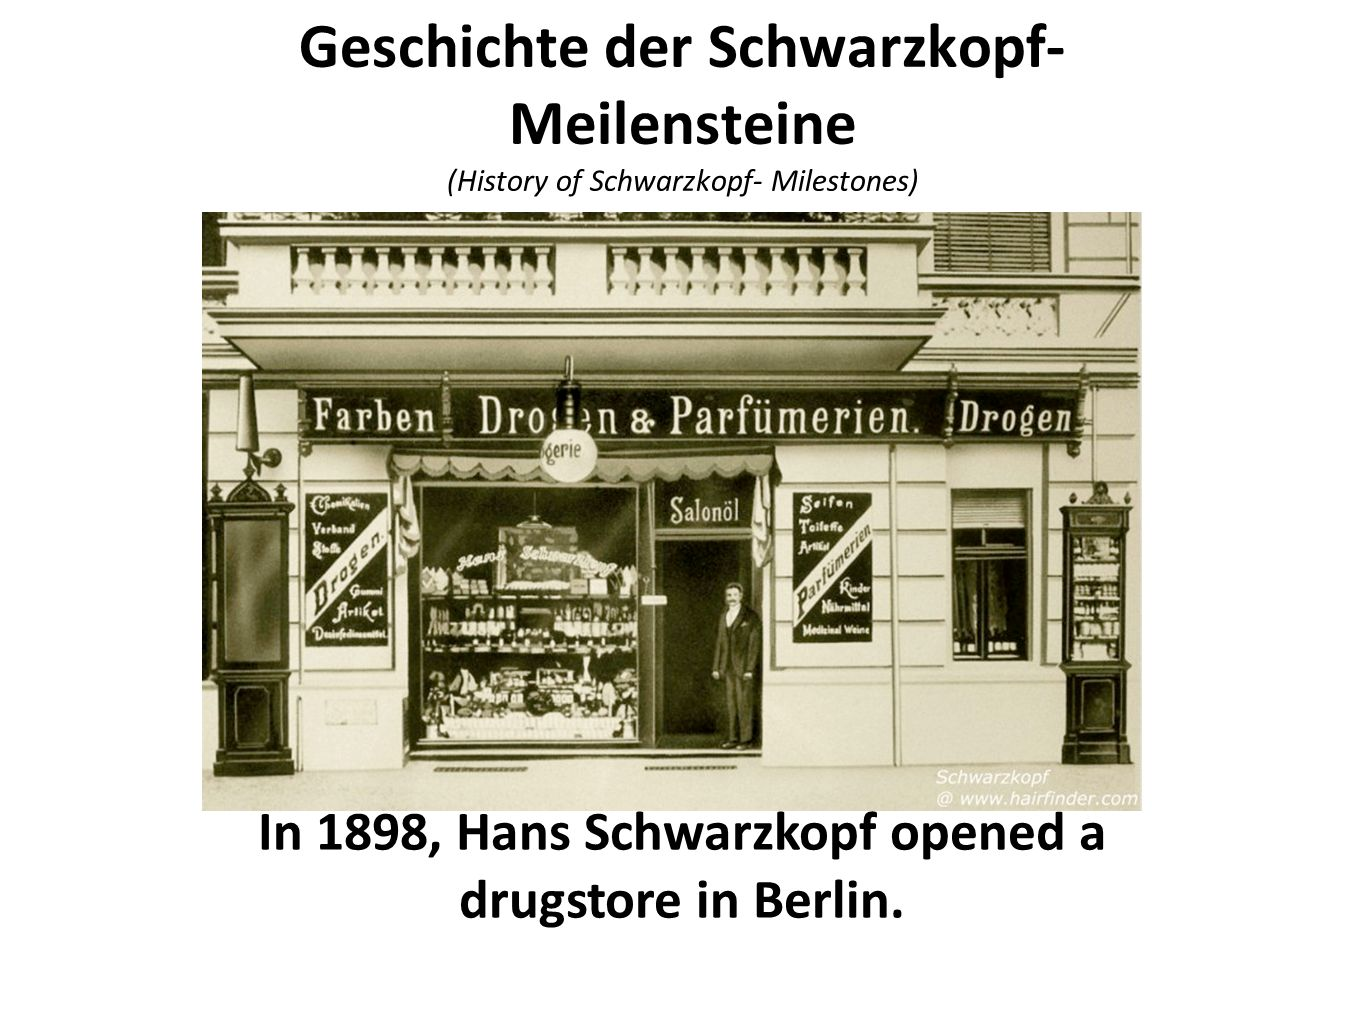 In 1898, Hans Schwarzkopf opened a drugstore in Berlin.